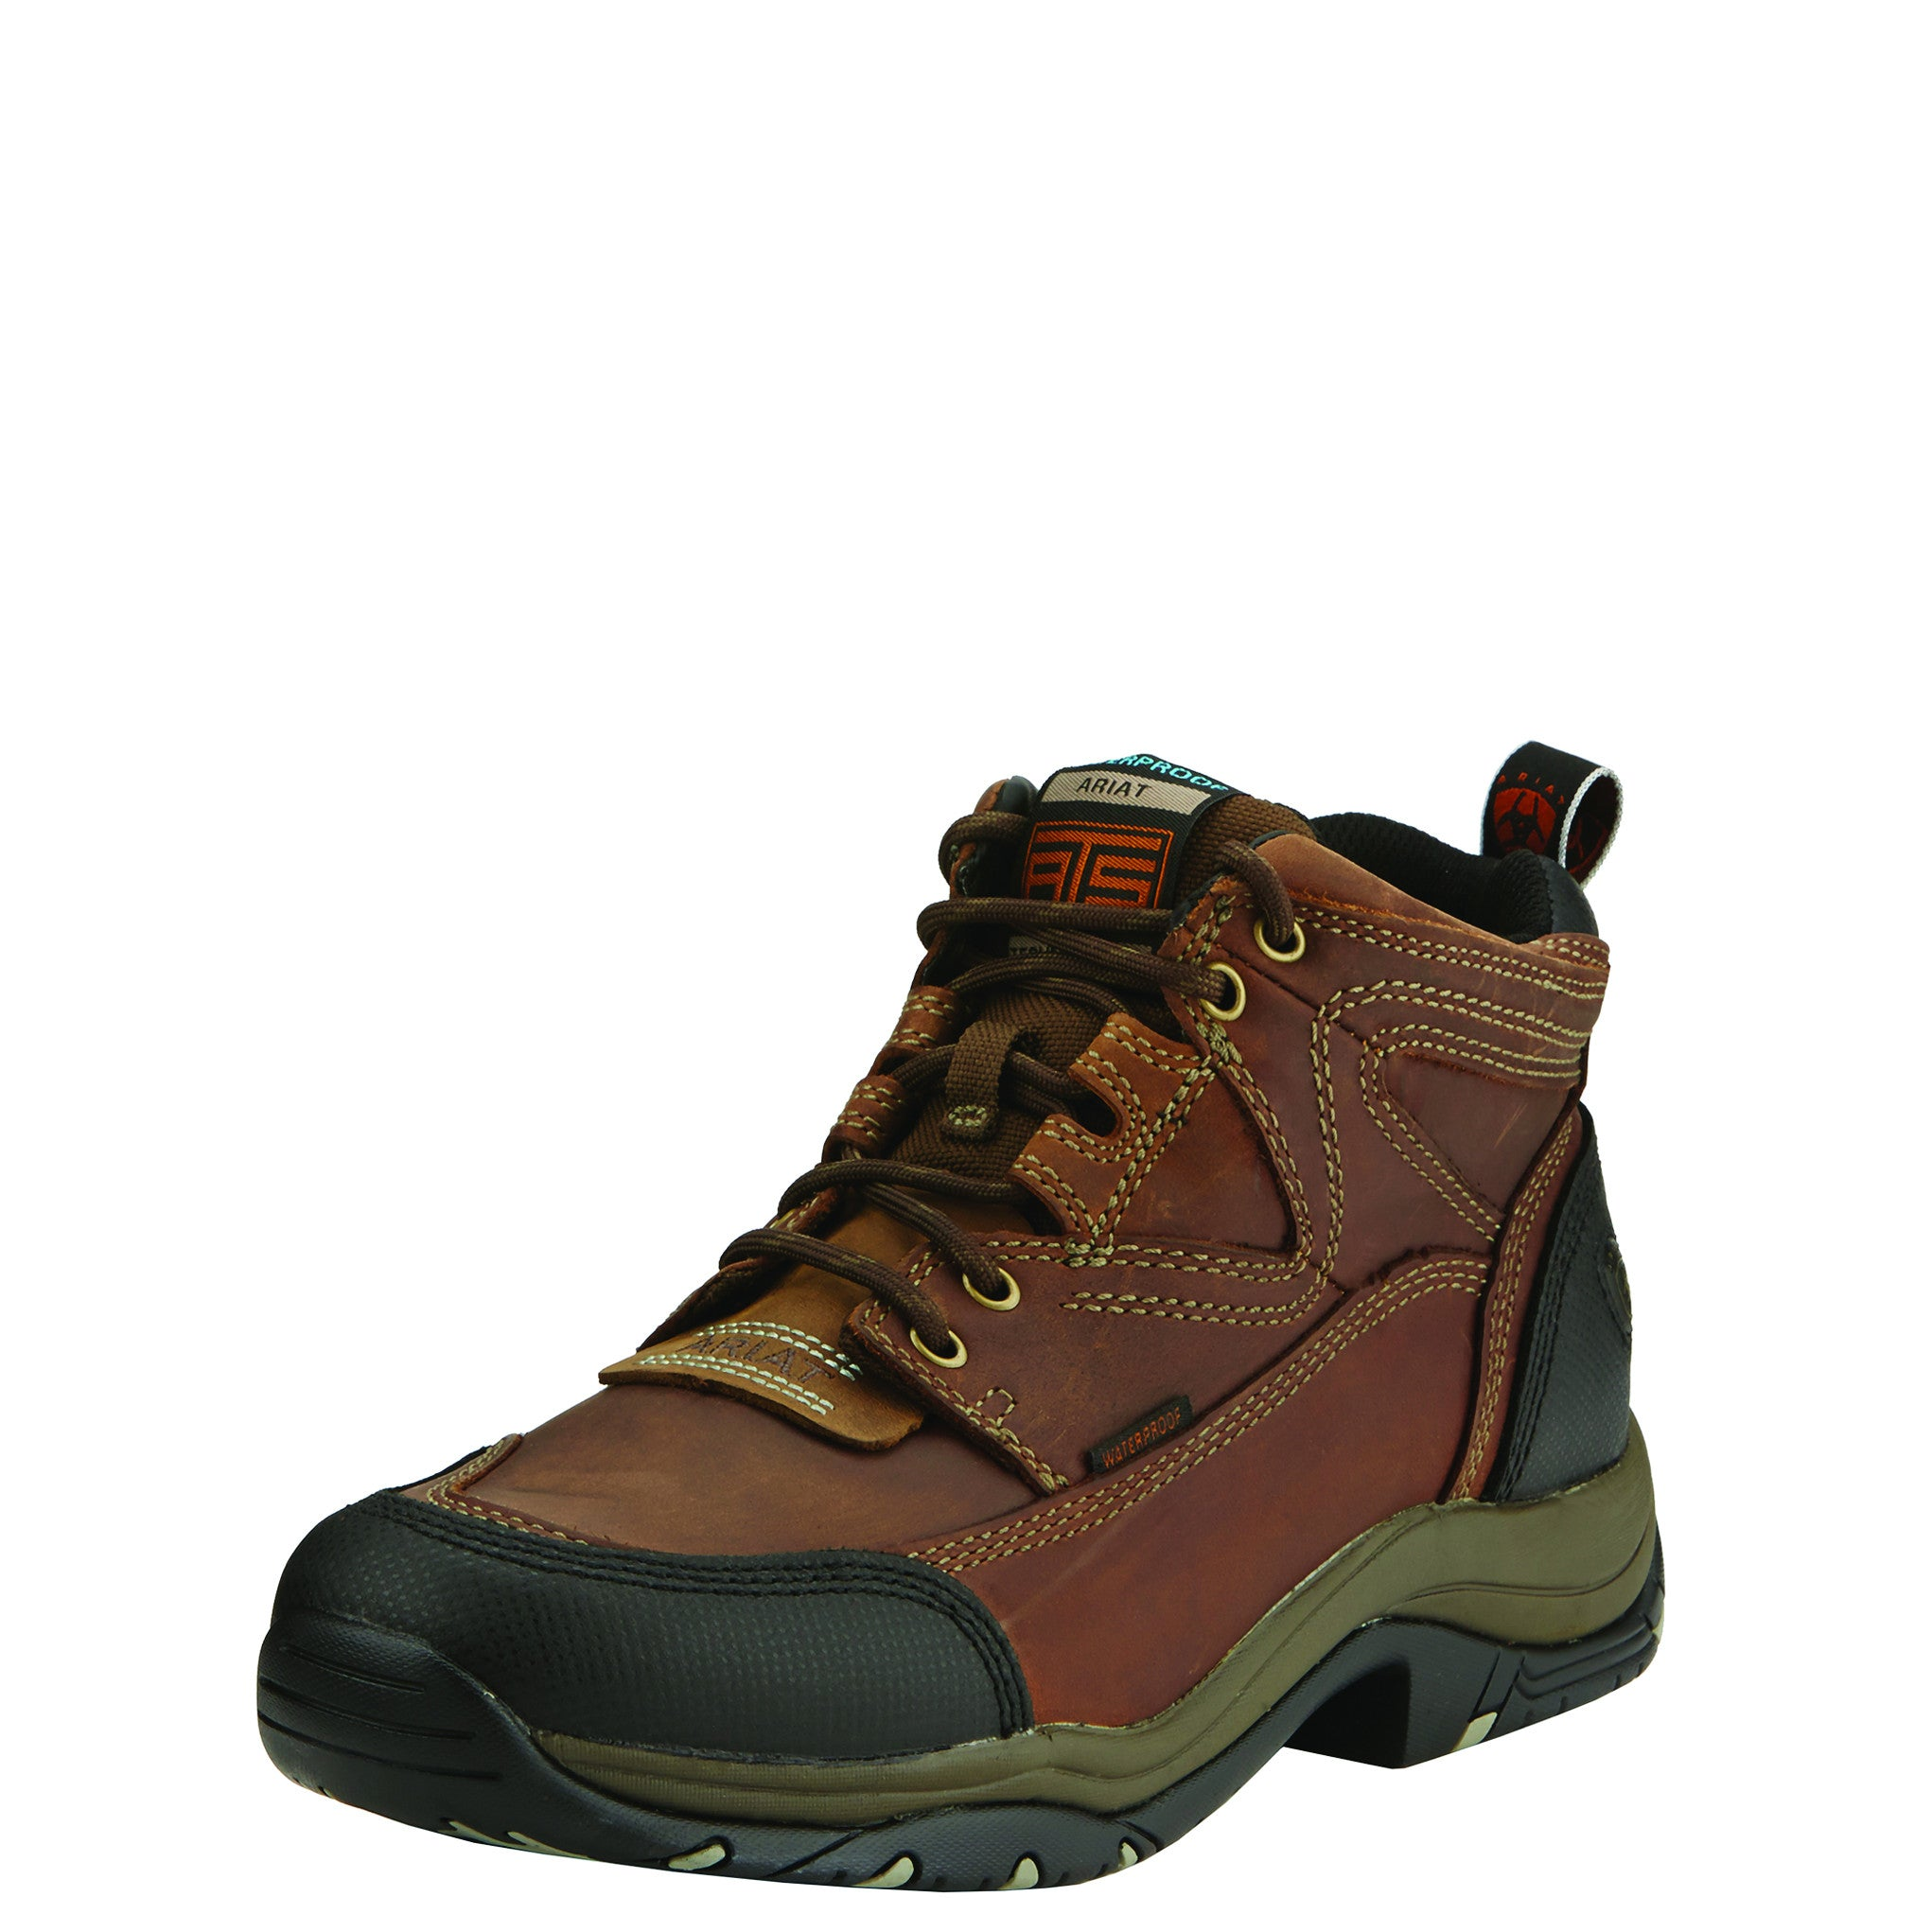 Ariat Mens Duraterrain H2O